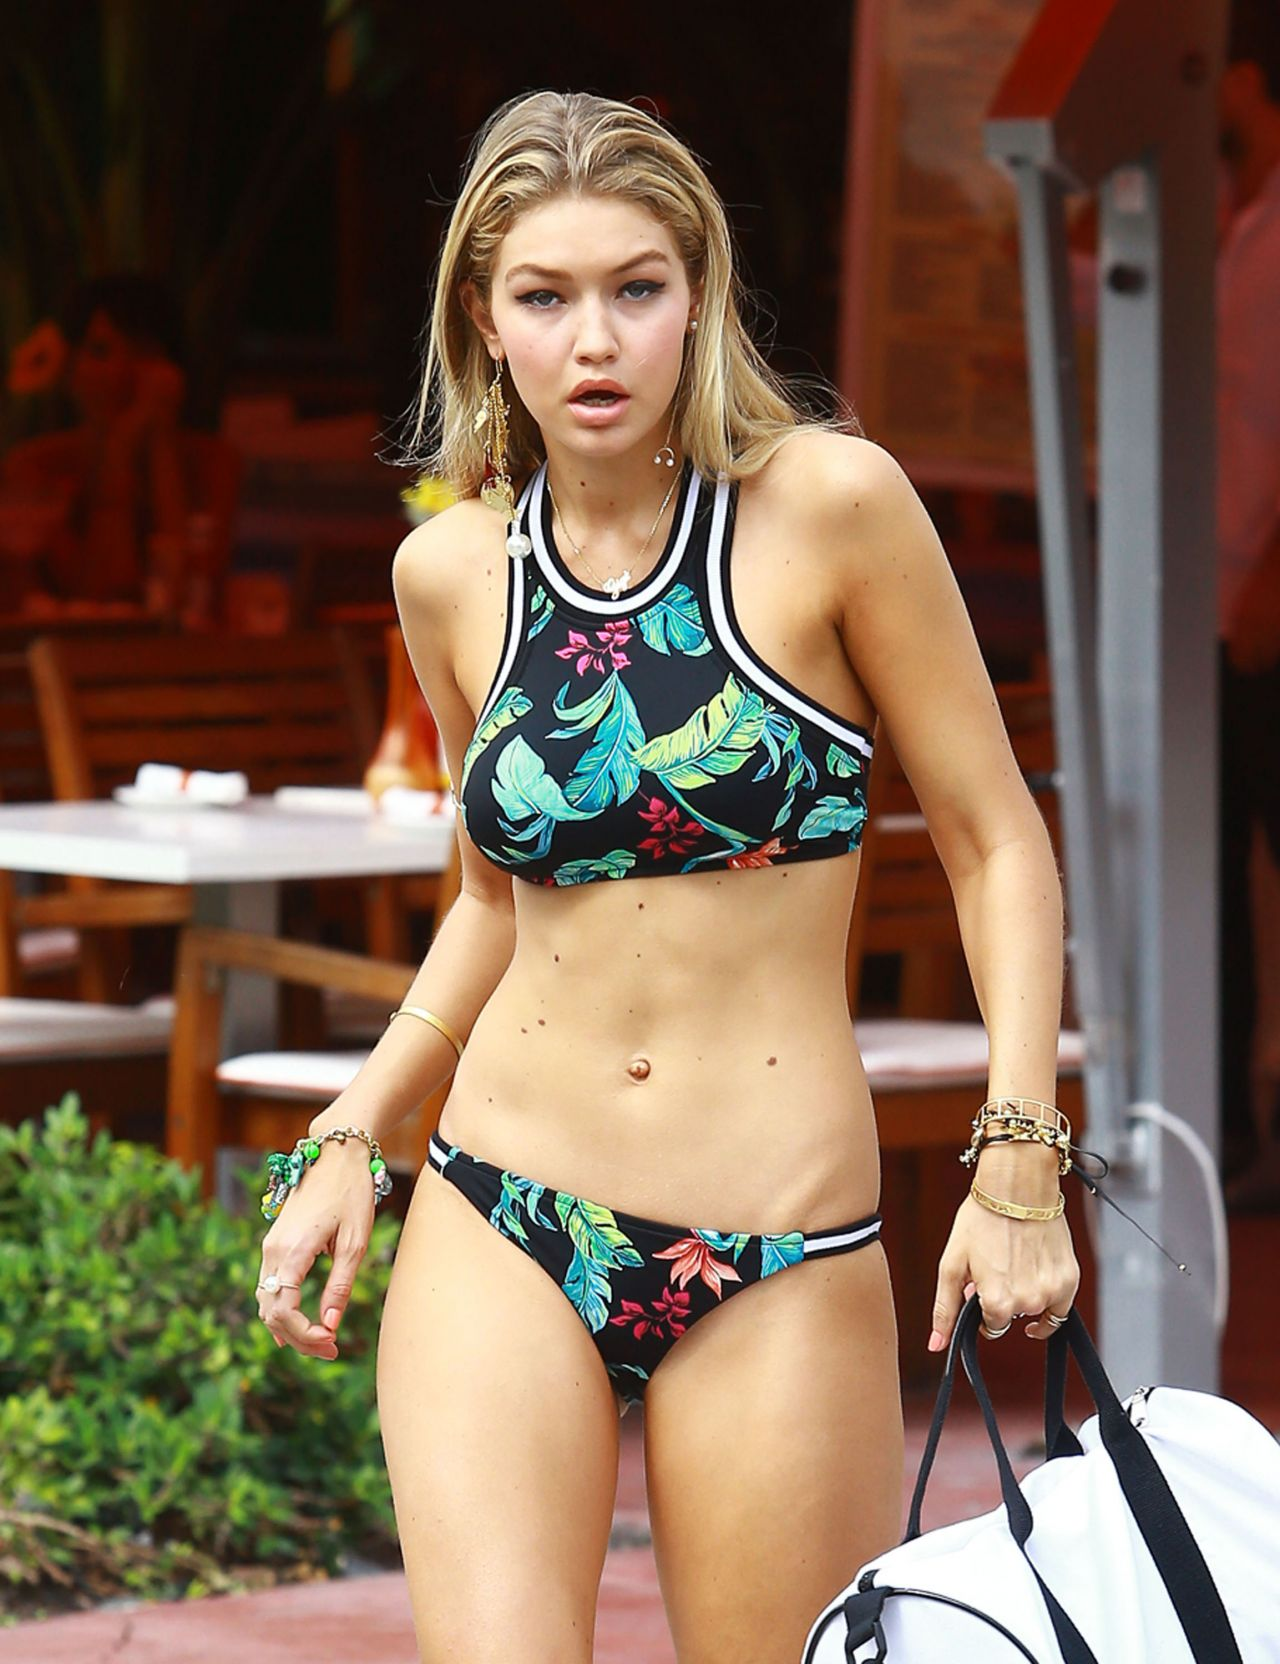 Gigi Hadid Bikini Photoshoot In Miami April 2015